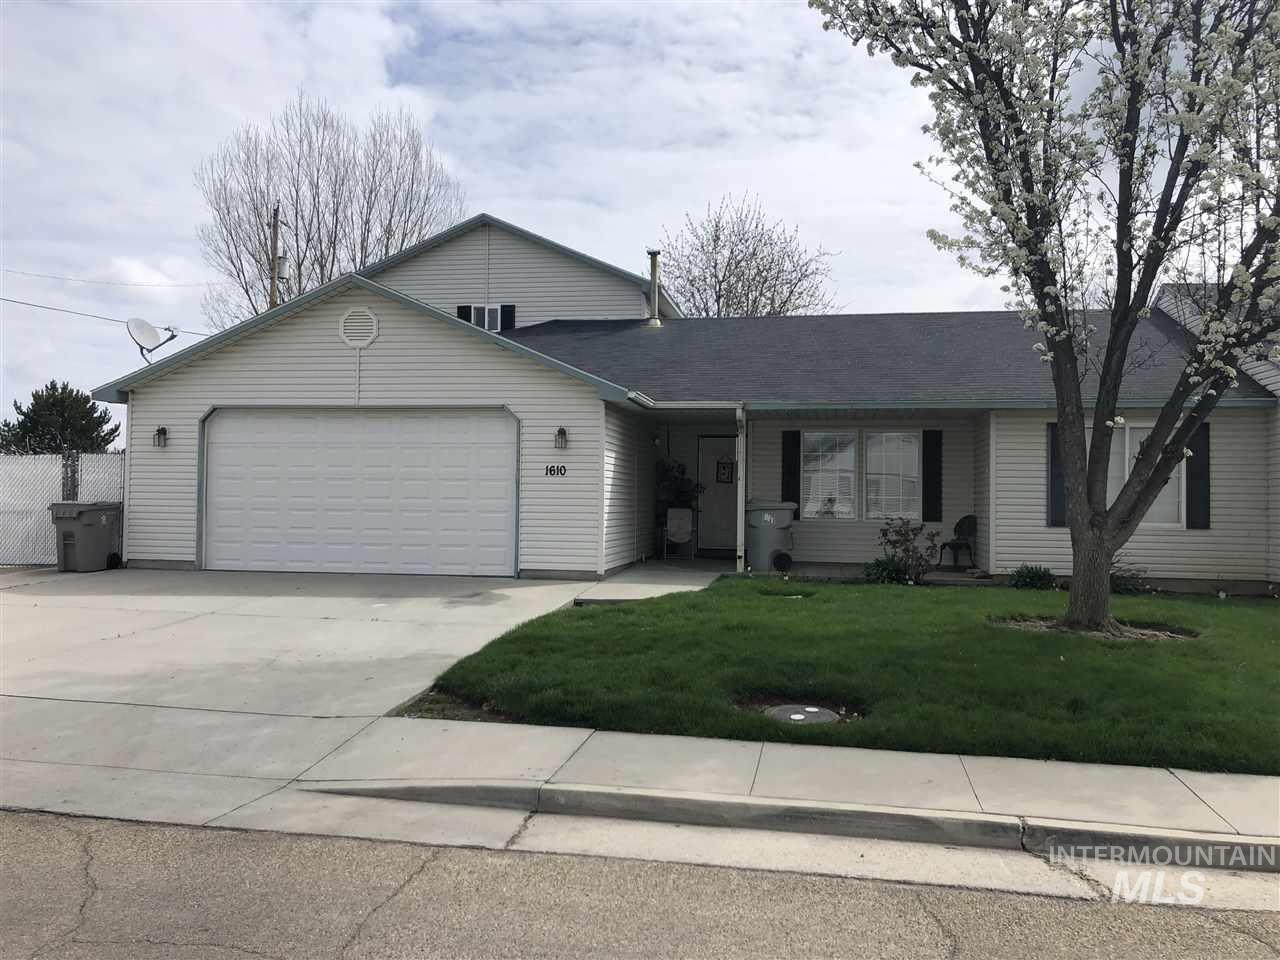 1610 Ohio Ave, Caldwell, Idaho 83605, 3 Bedrooms, 2 Bathrooms, Residential Income For Sale, Price $365,000, 98725464